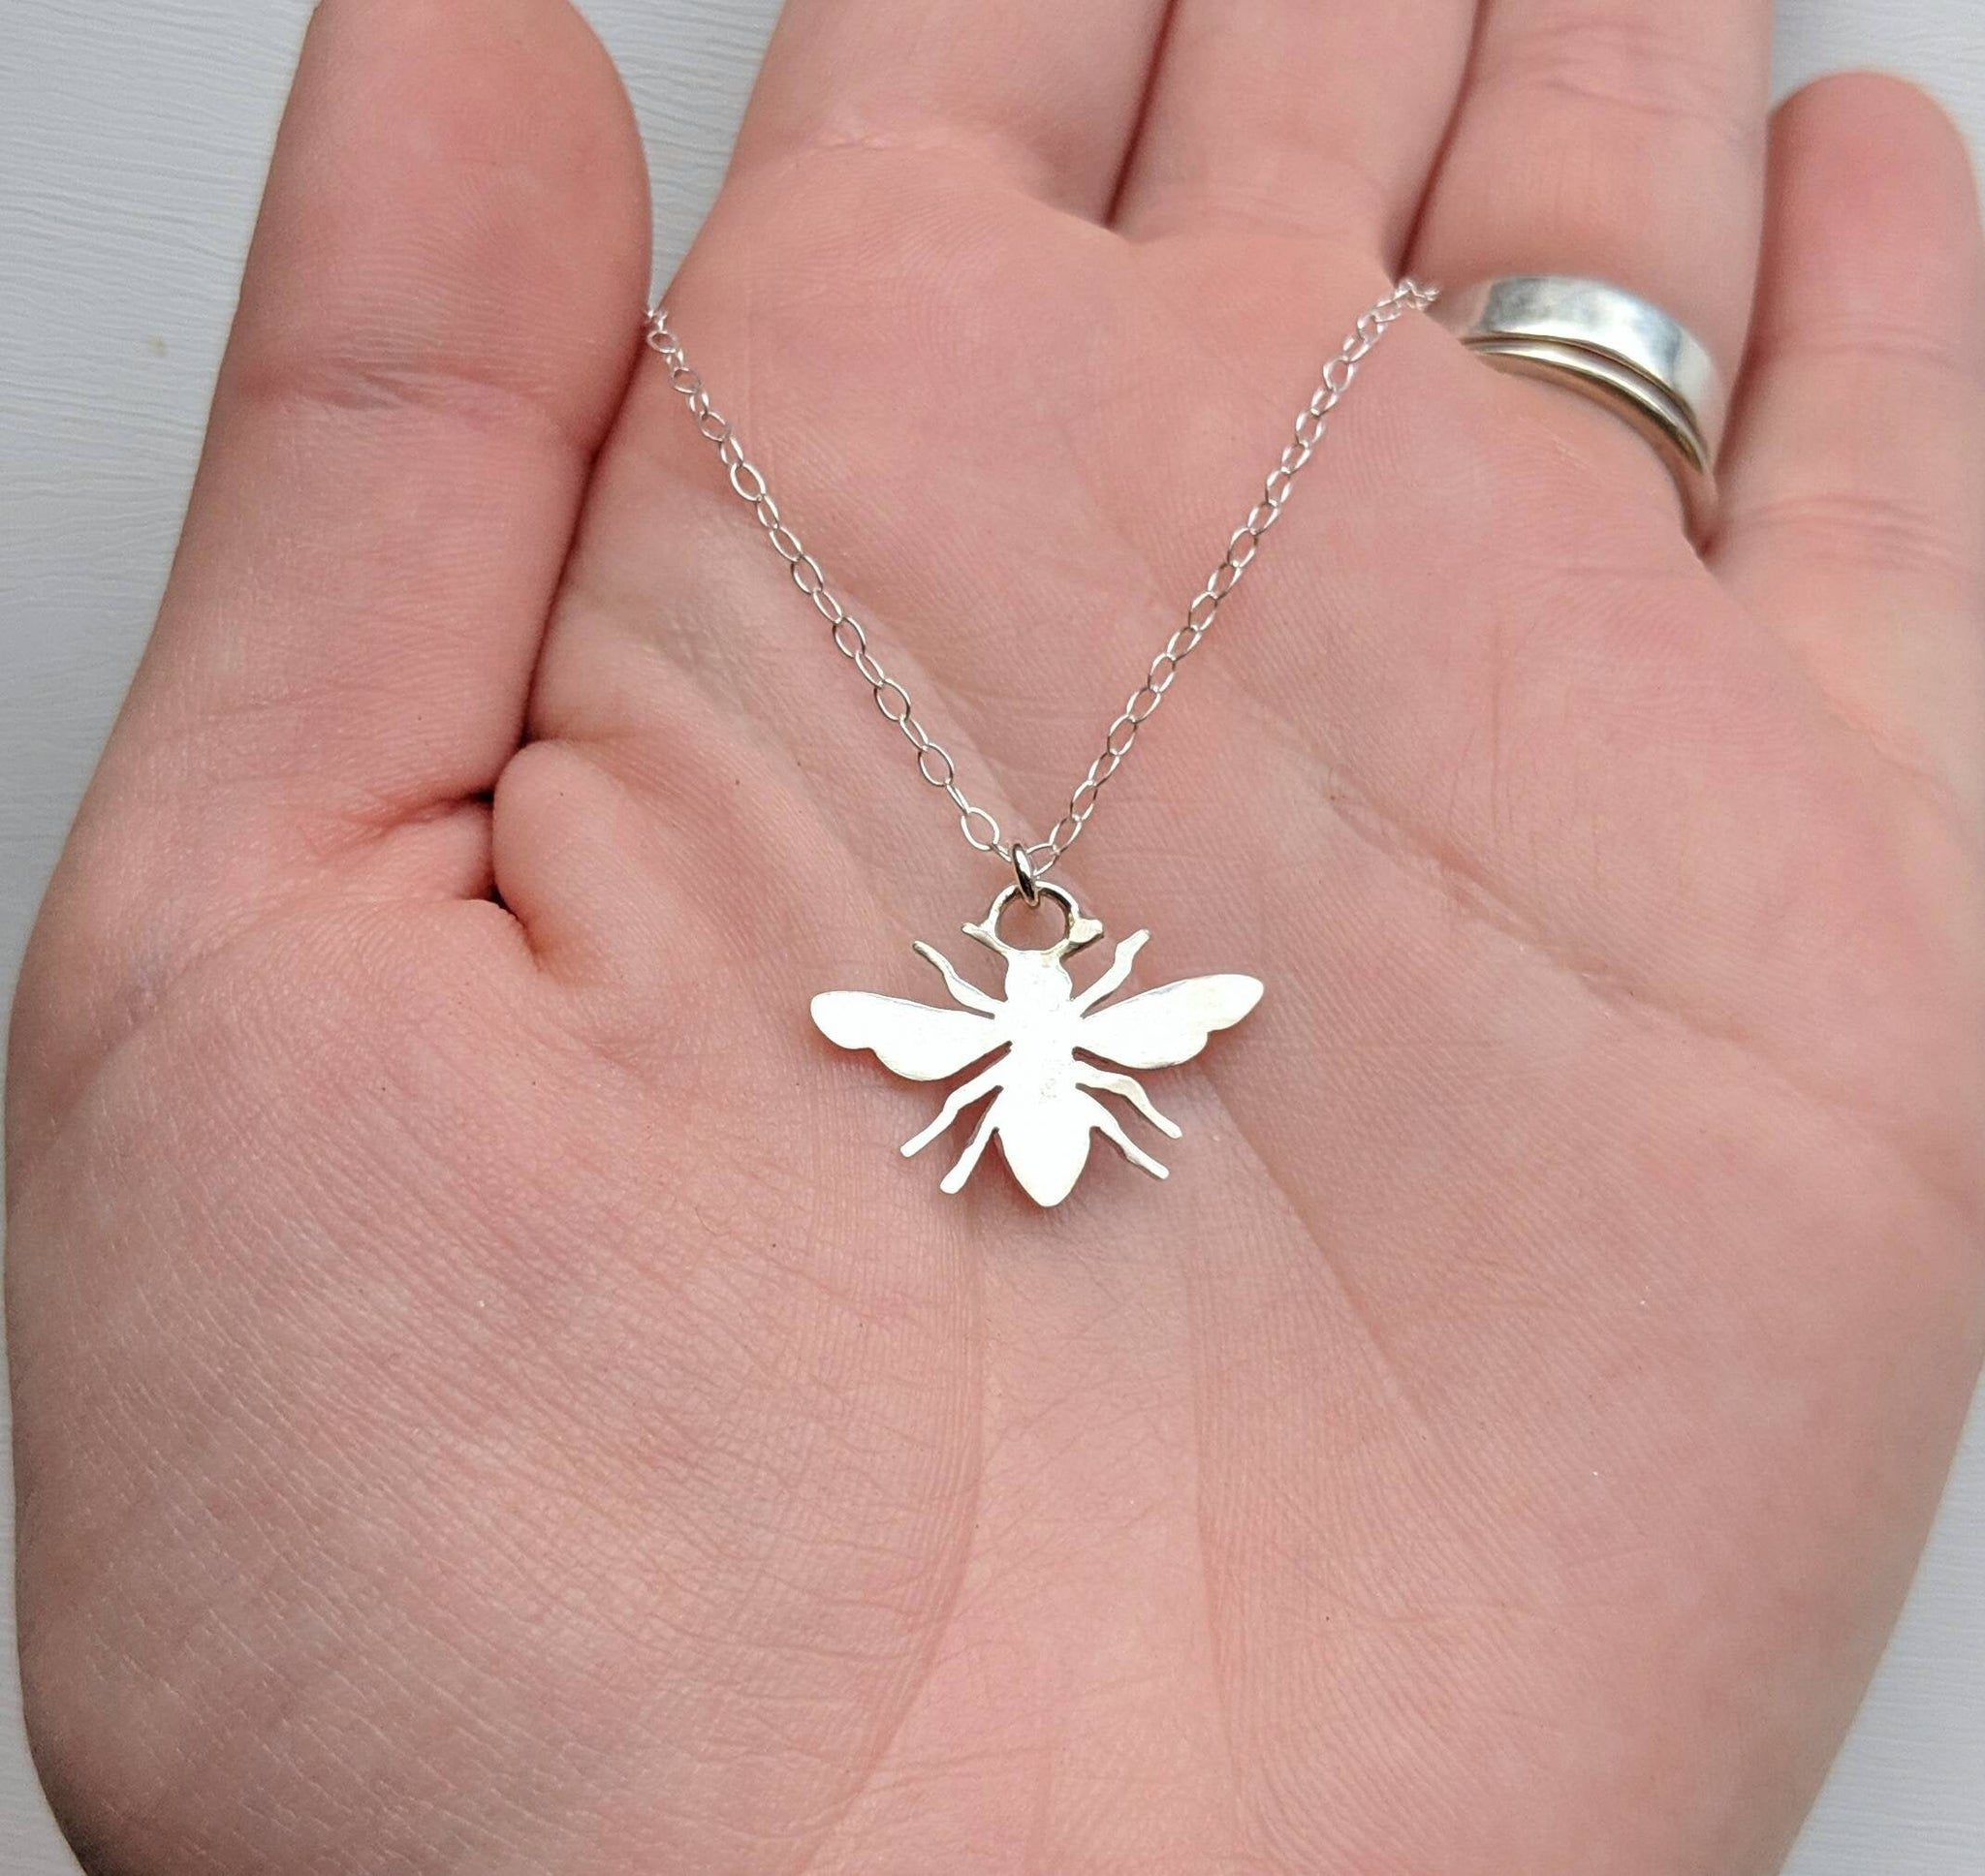 Sterling silver bee necklace handmade by An American Metalsmith